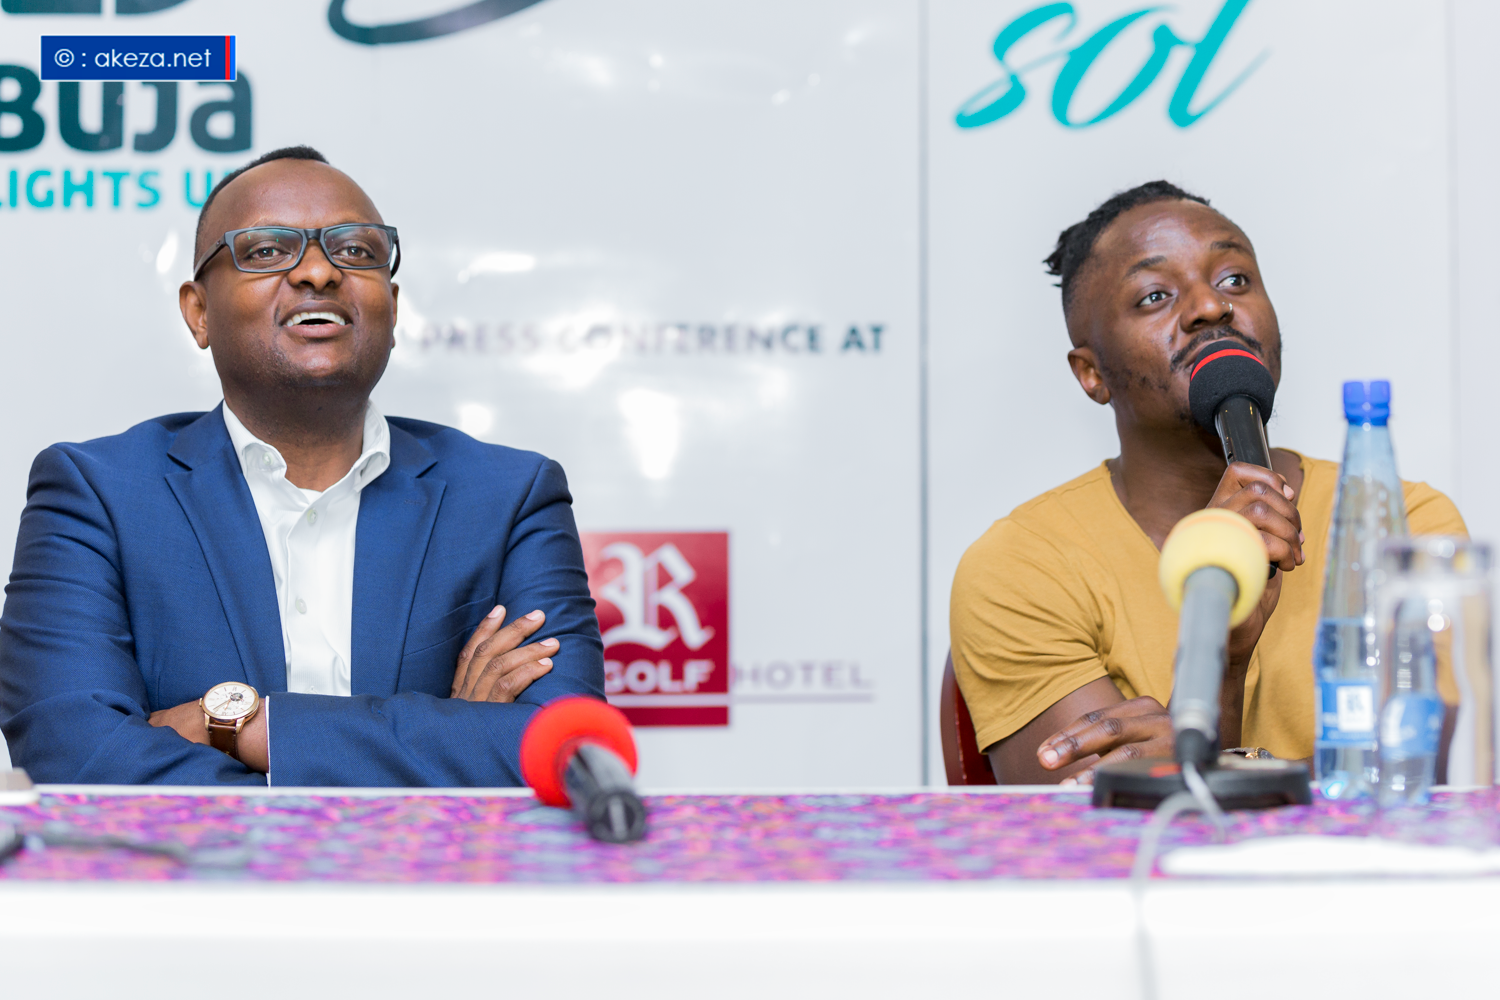 Sauti Sol coming back to their second home; Burundi